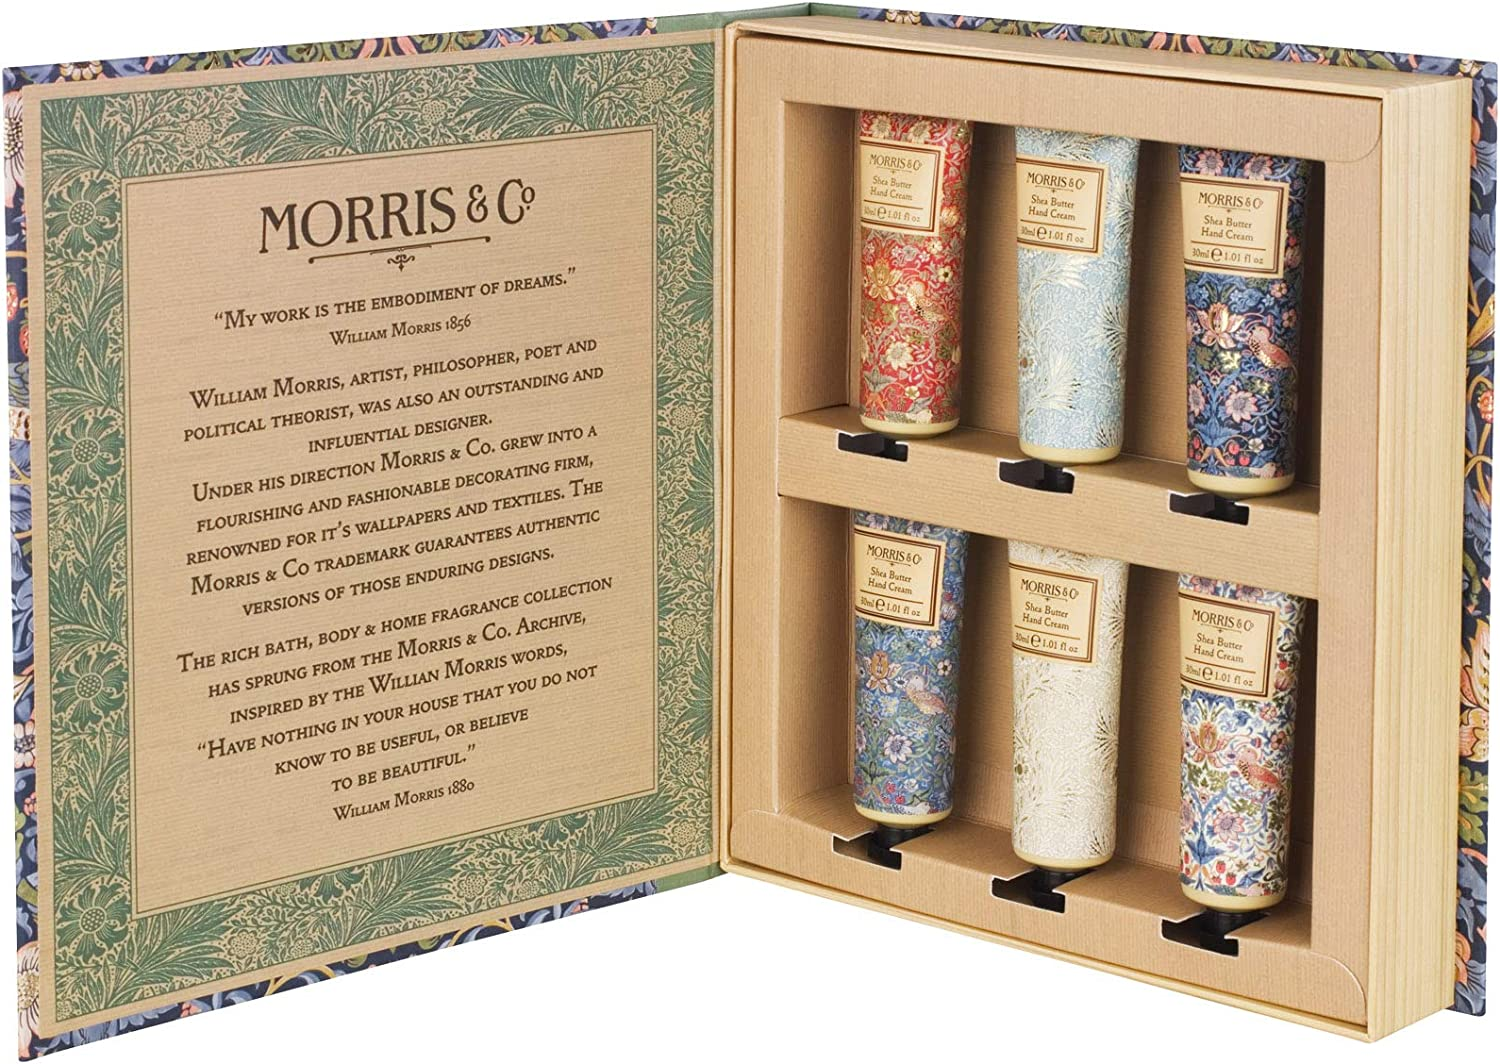 Morris & Co Library of Prints Hand Creams Set